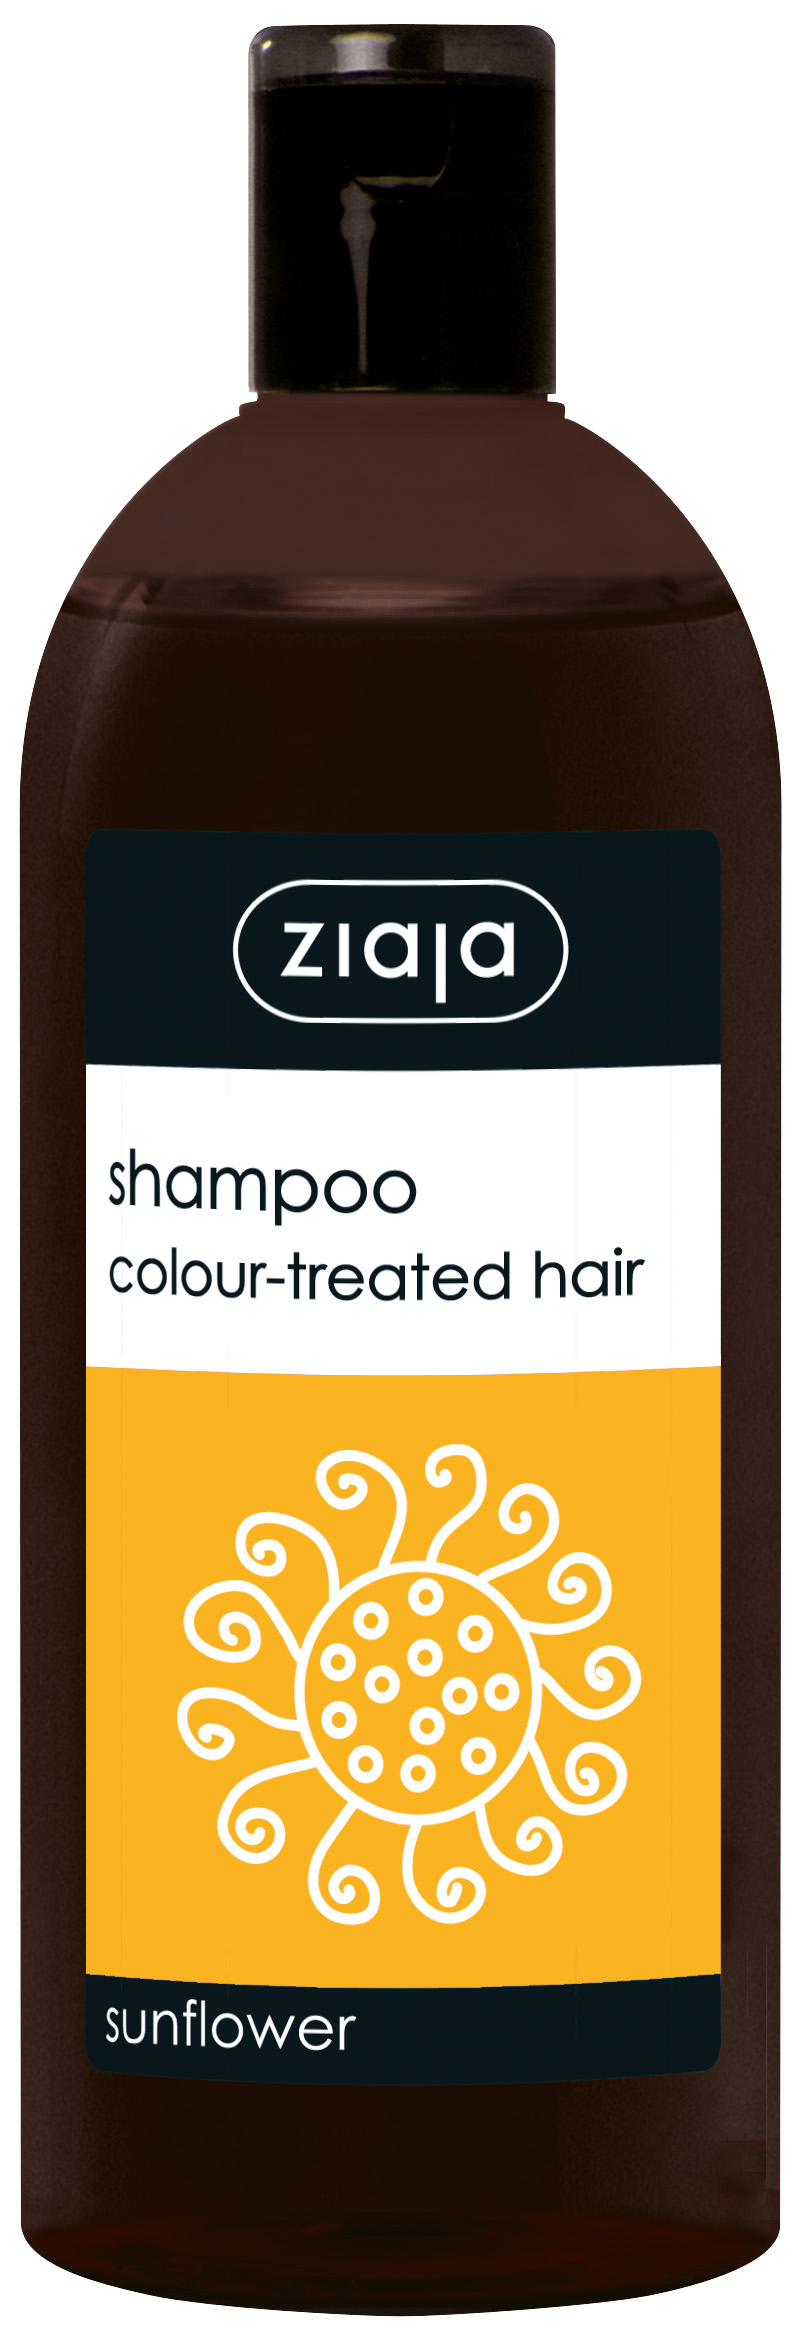 Ziaja Shampoo for colored hair with sunflower extract